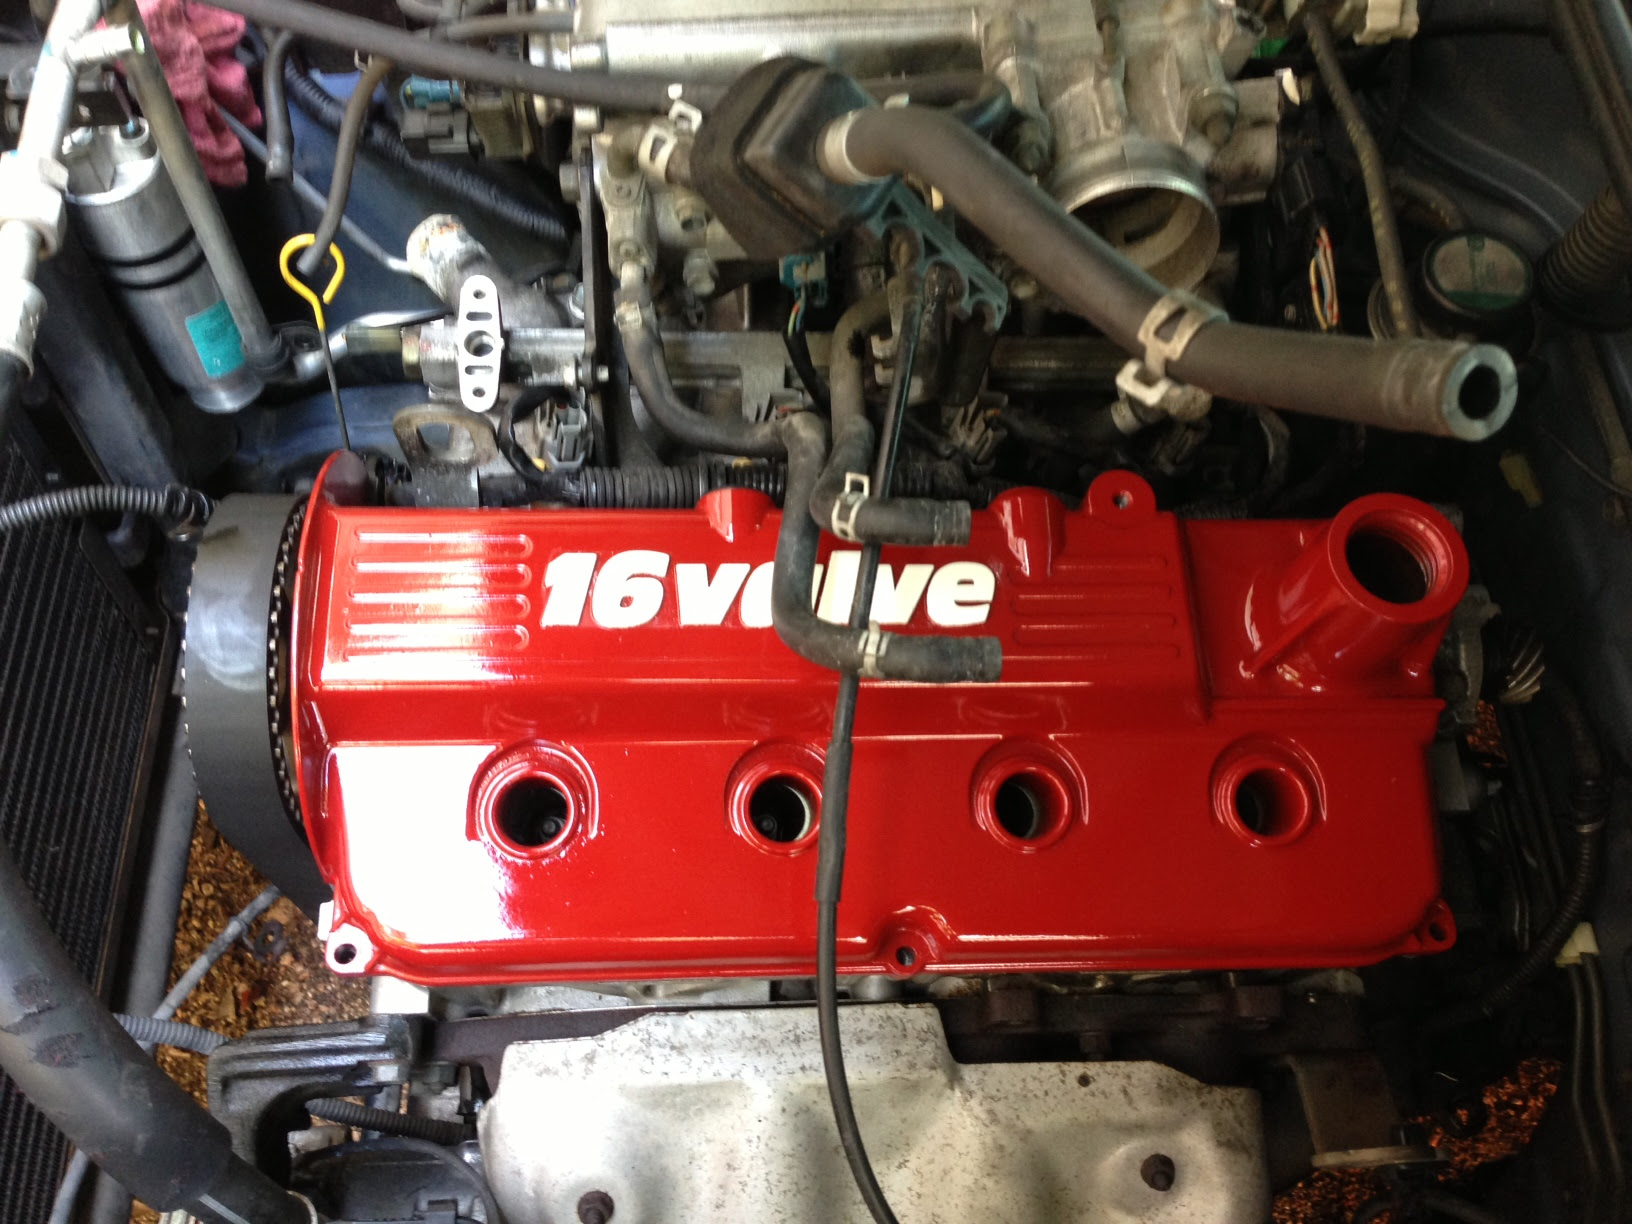 1 6 Liter 16valve Engine Geo Tracker Classic Cars And Tools